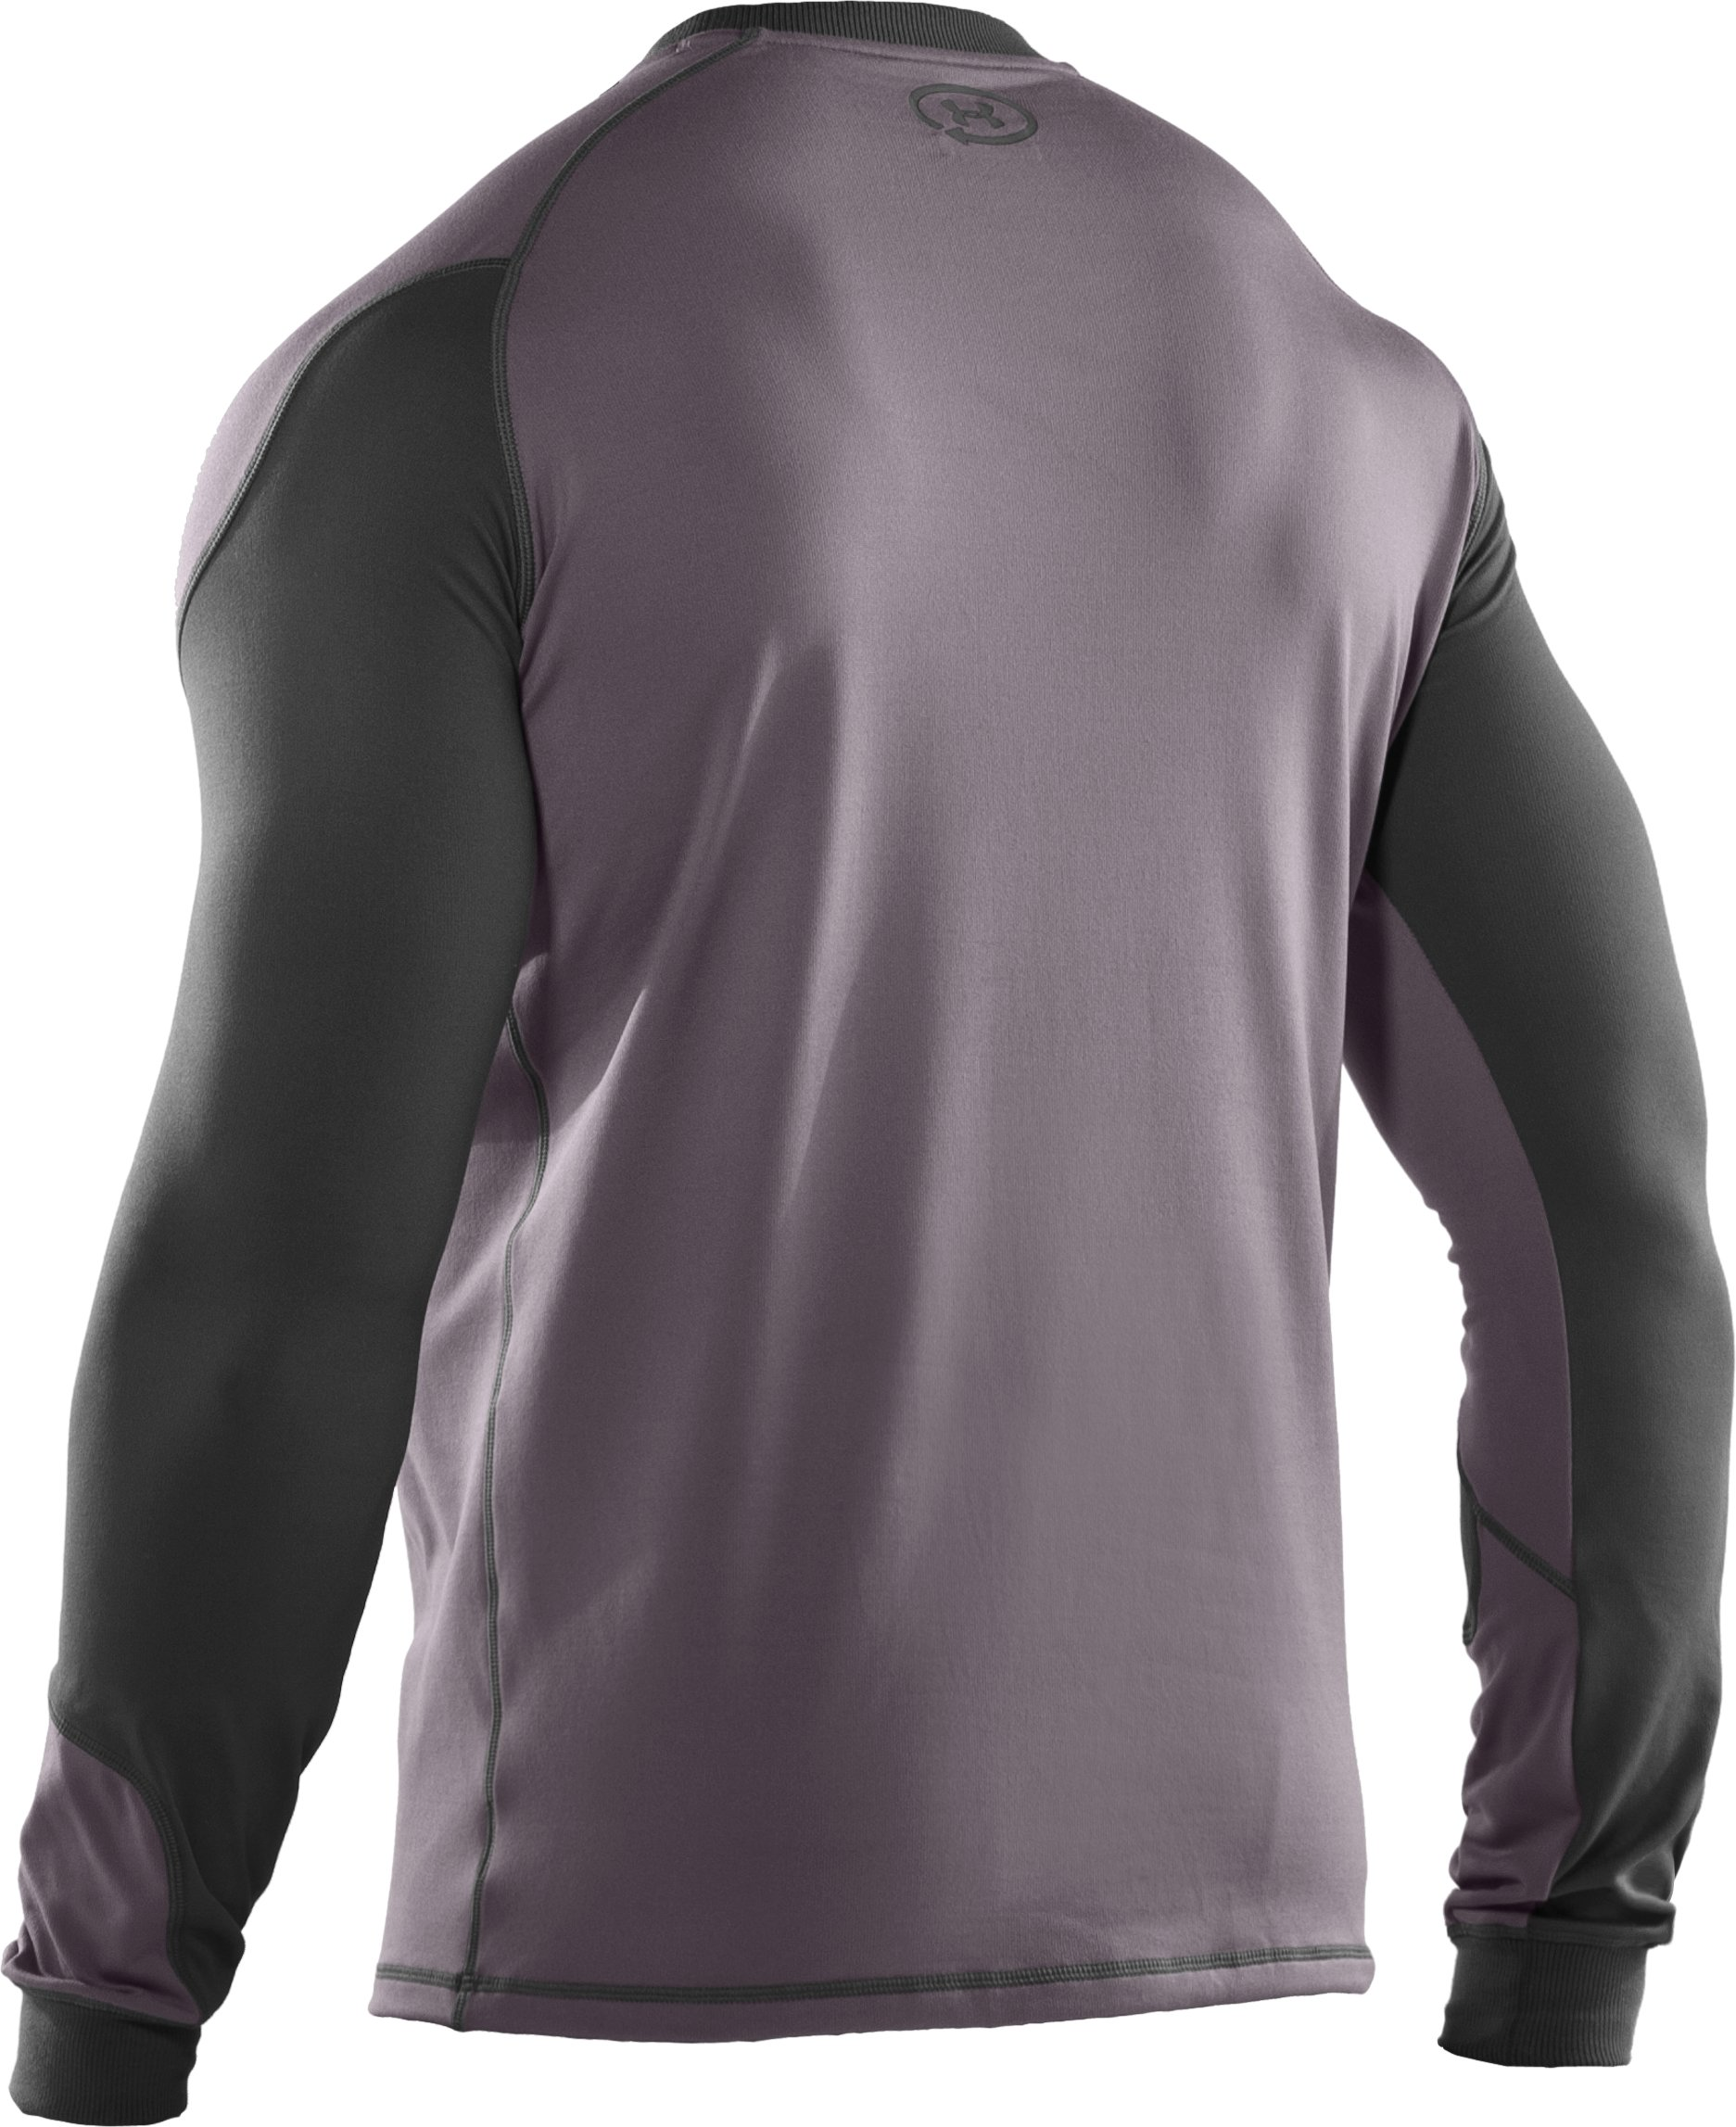 Men's ColdGear® UA Catalyst Crew, Charcoal